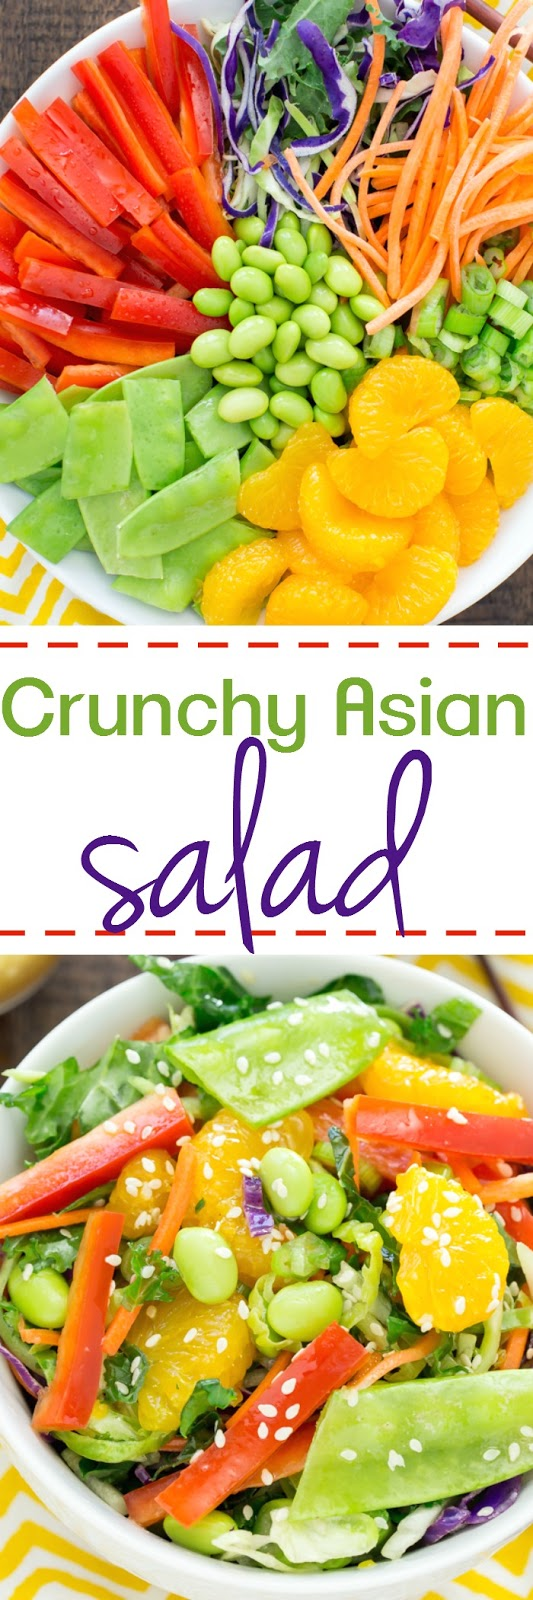 Crunchy Asian Salad with Homemade Sesame Ginger Dressing